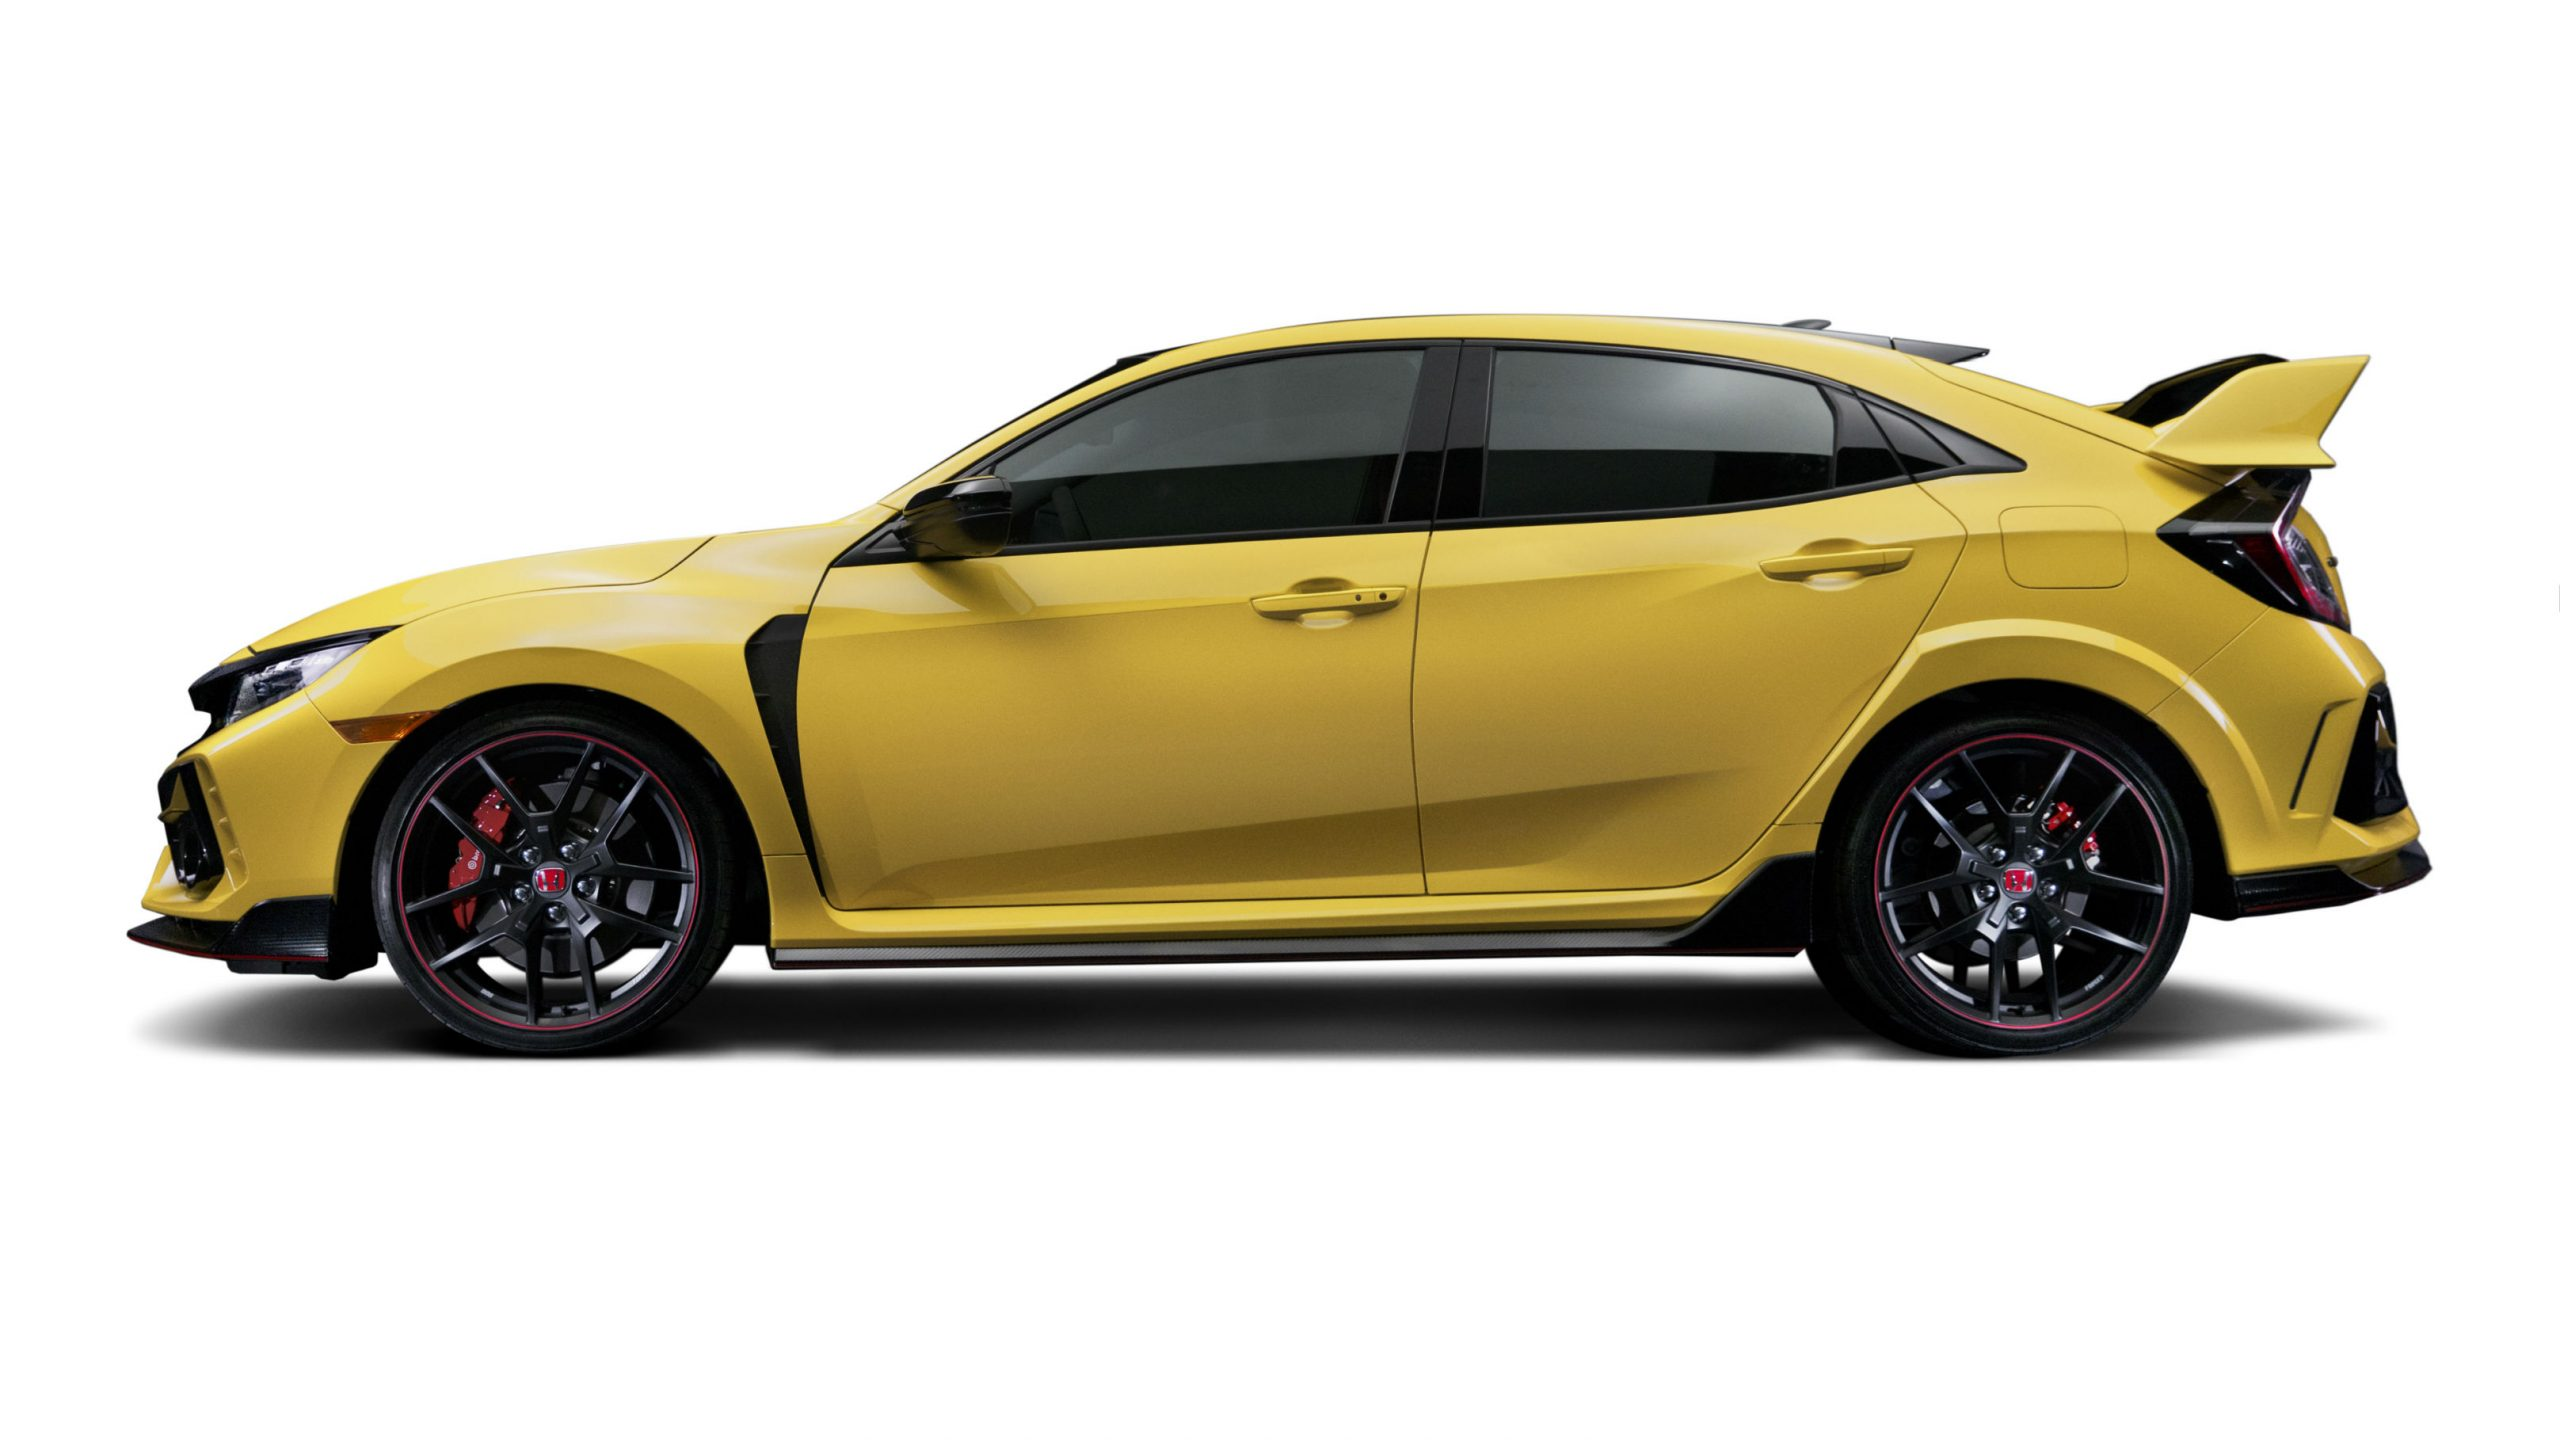 Honda Civic Type R Limited Editions Sold Out